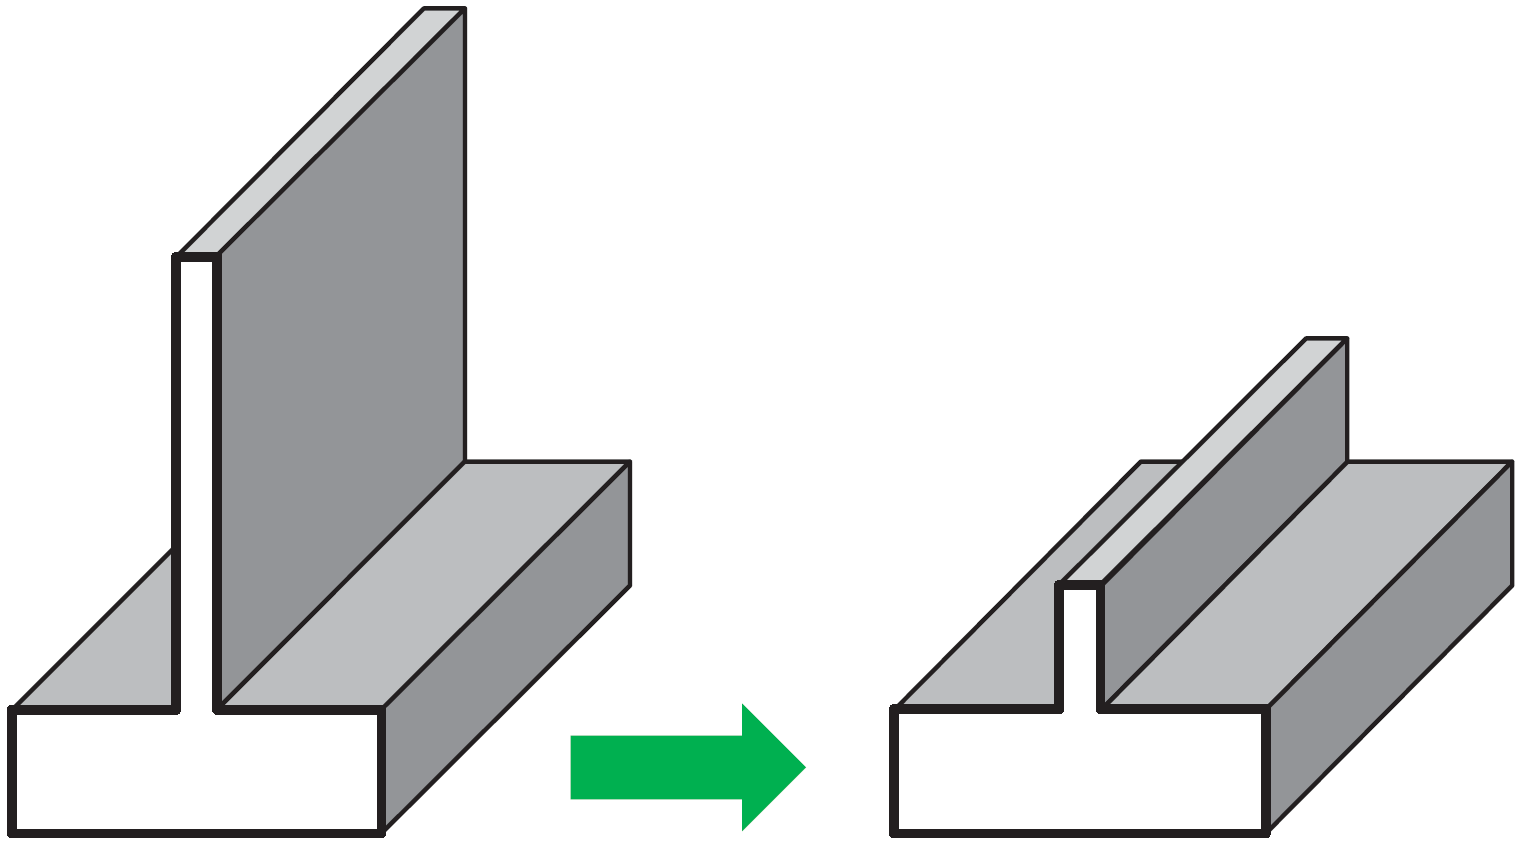 Minimum wall thickness for 3D printing